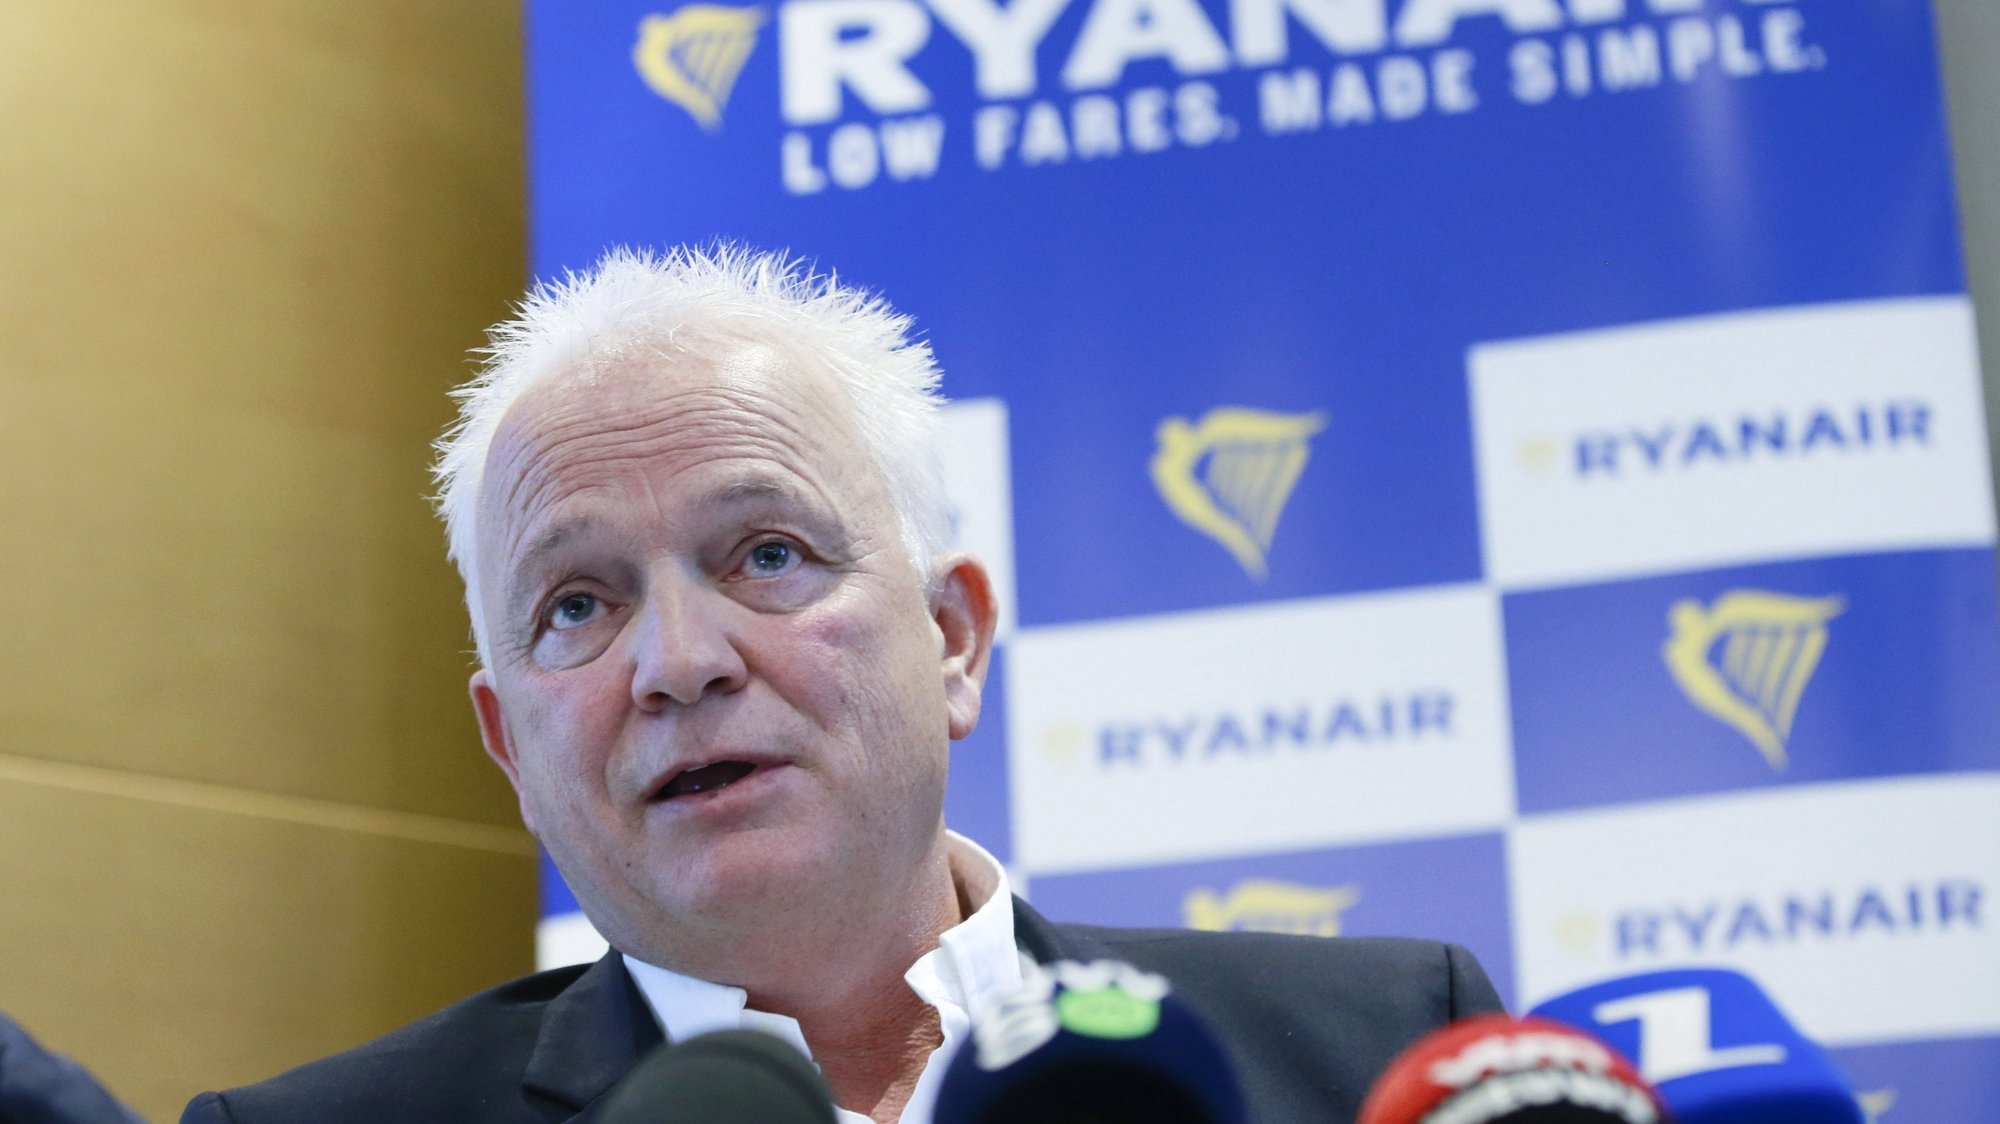 epa06203889 Ryanair's Chief People Officer Eddie Wilson gives a press conference in Brussels, Belgium, 14 September 2017. Wilson commented on the decision by European Court of Justice (ECJ) in the so-called 'Mons' case to rule in favour of Irish low-cost carrier Ryanair and reject the CTC Union's argument.  EPA/OLIVIER HOSLET